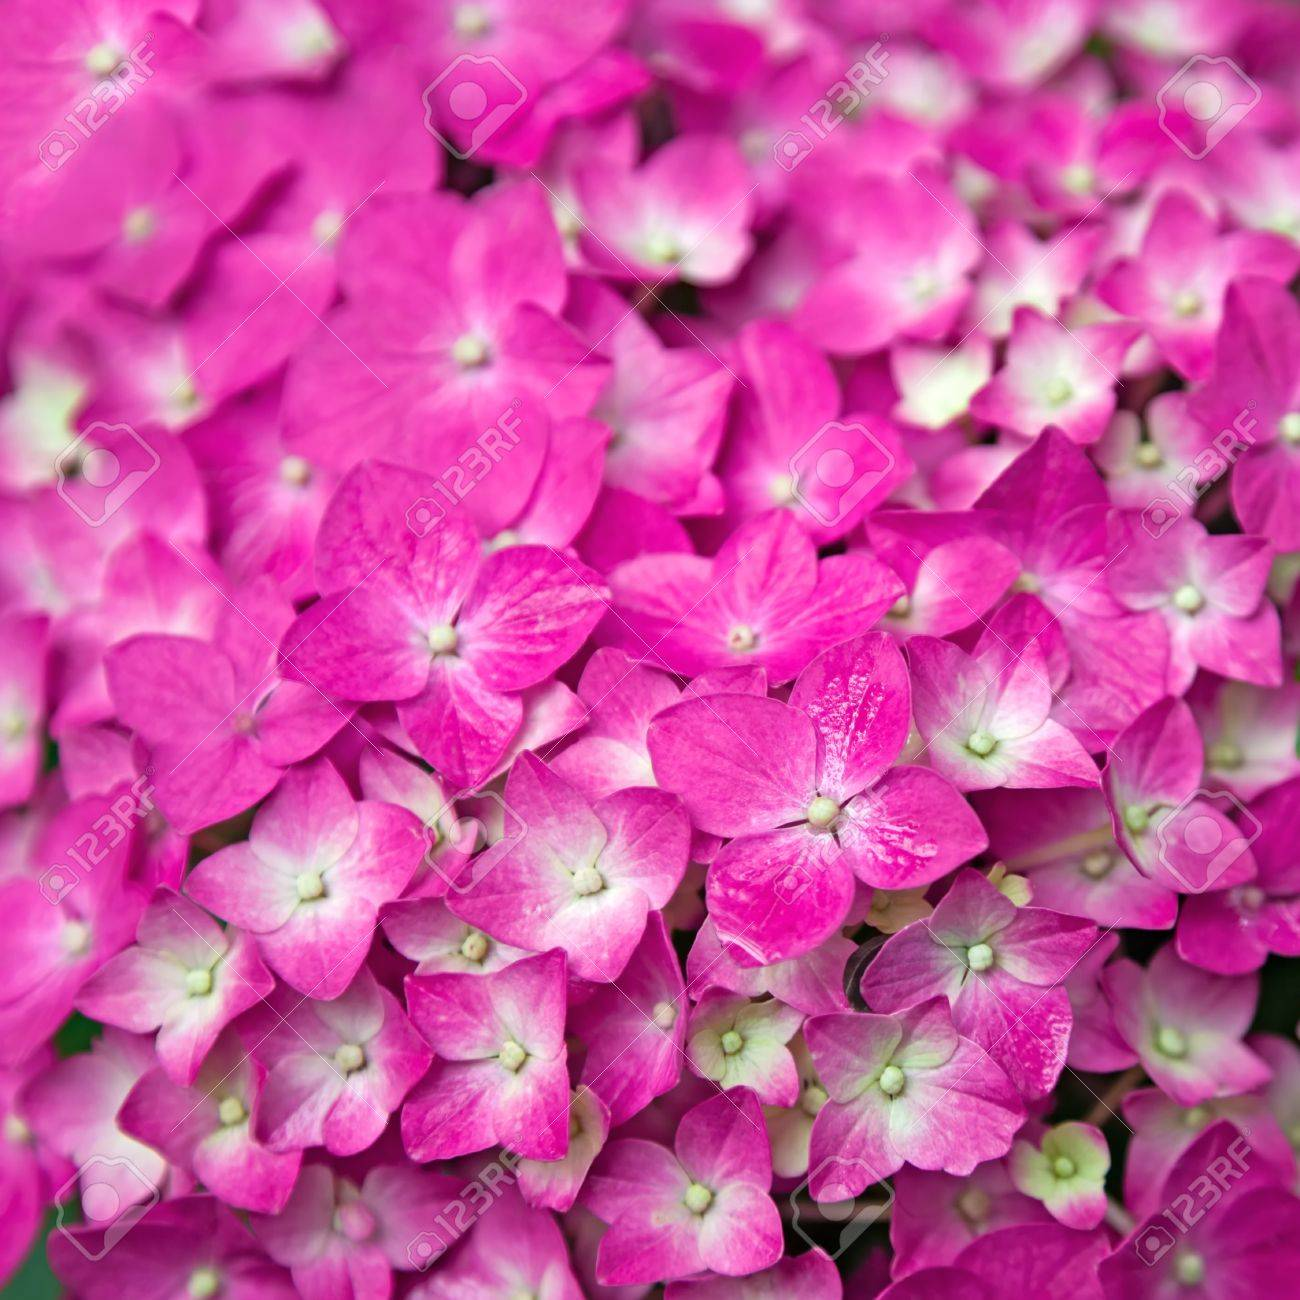 Pink hydrangea flower hydrangea common names hydrangea and pink hydrangea flower hydrangea common names hydrangea and hortensia hydrangea flowers are produced from early dhlflorist Image collections